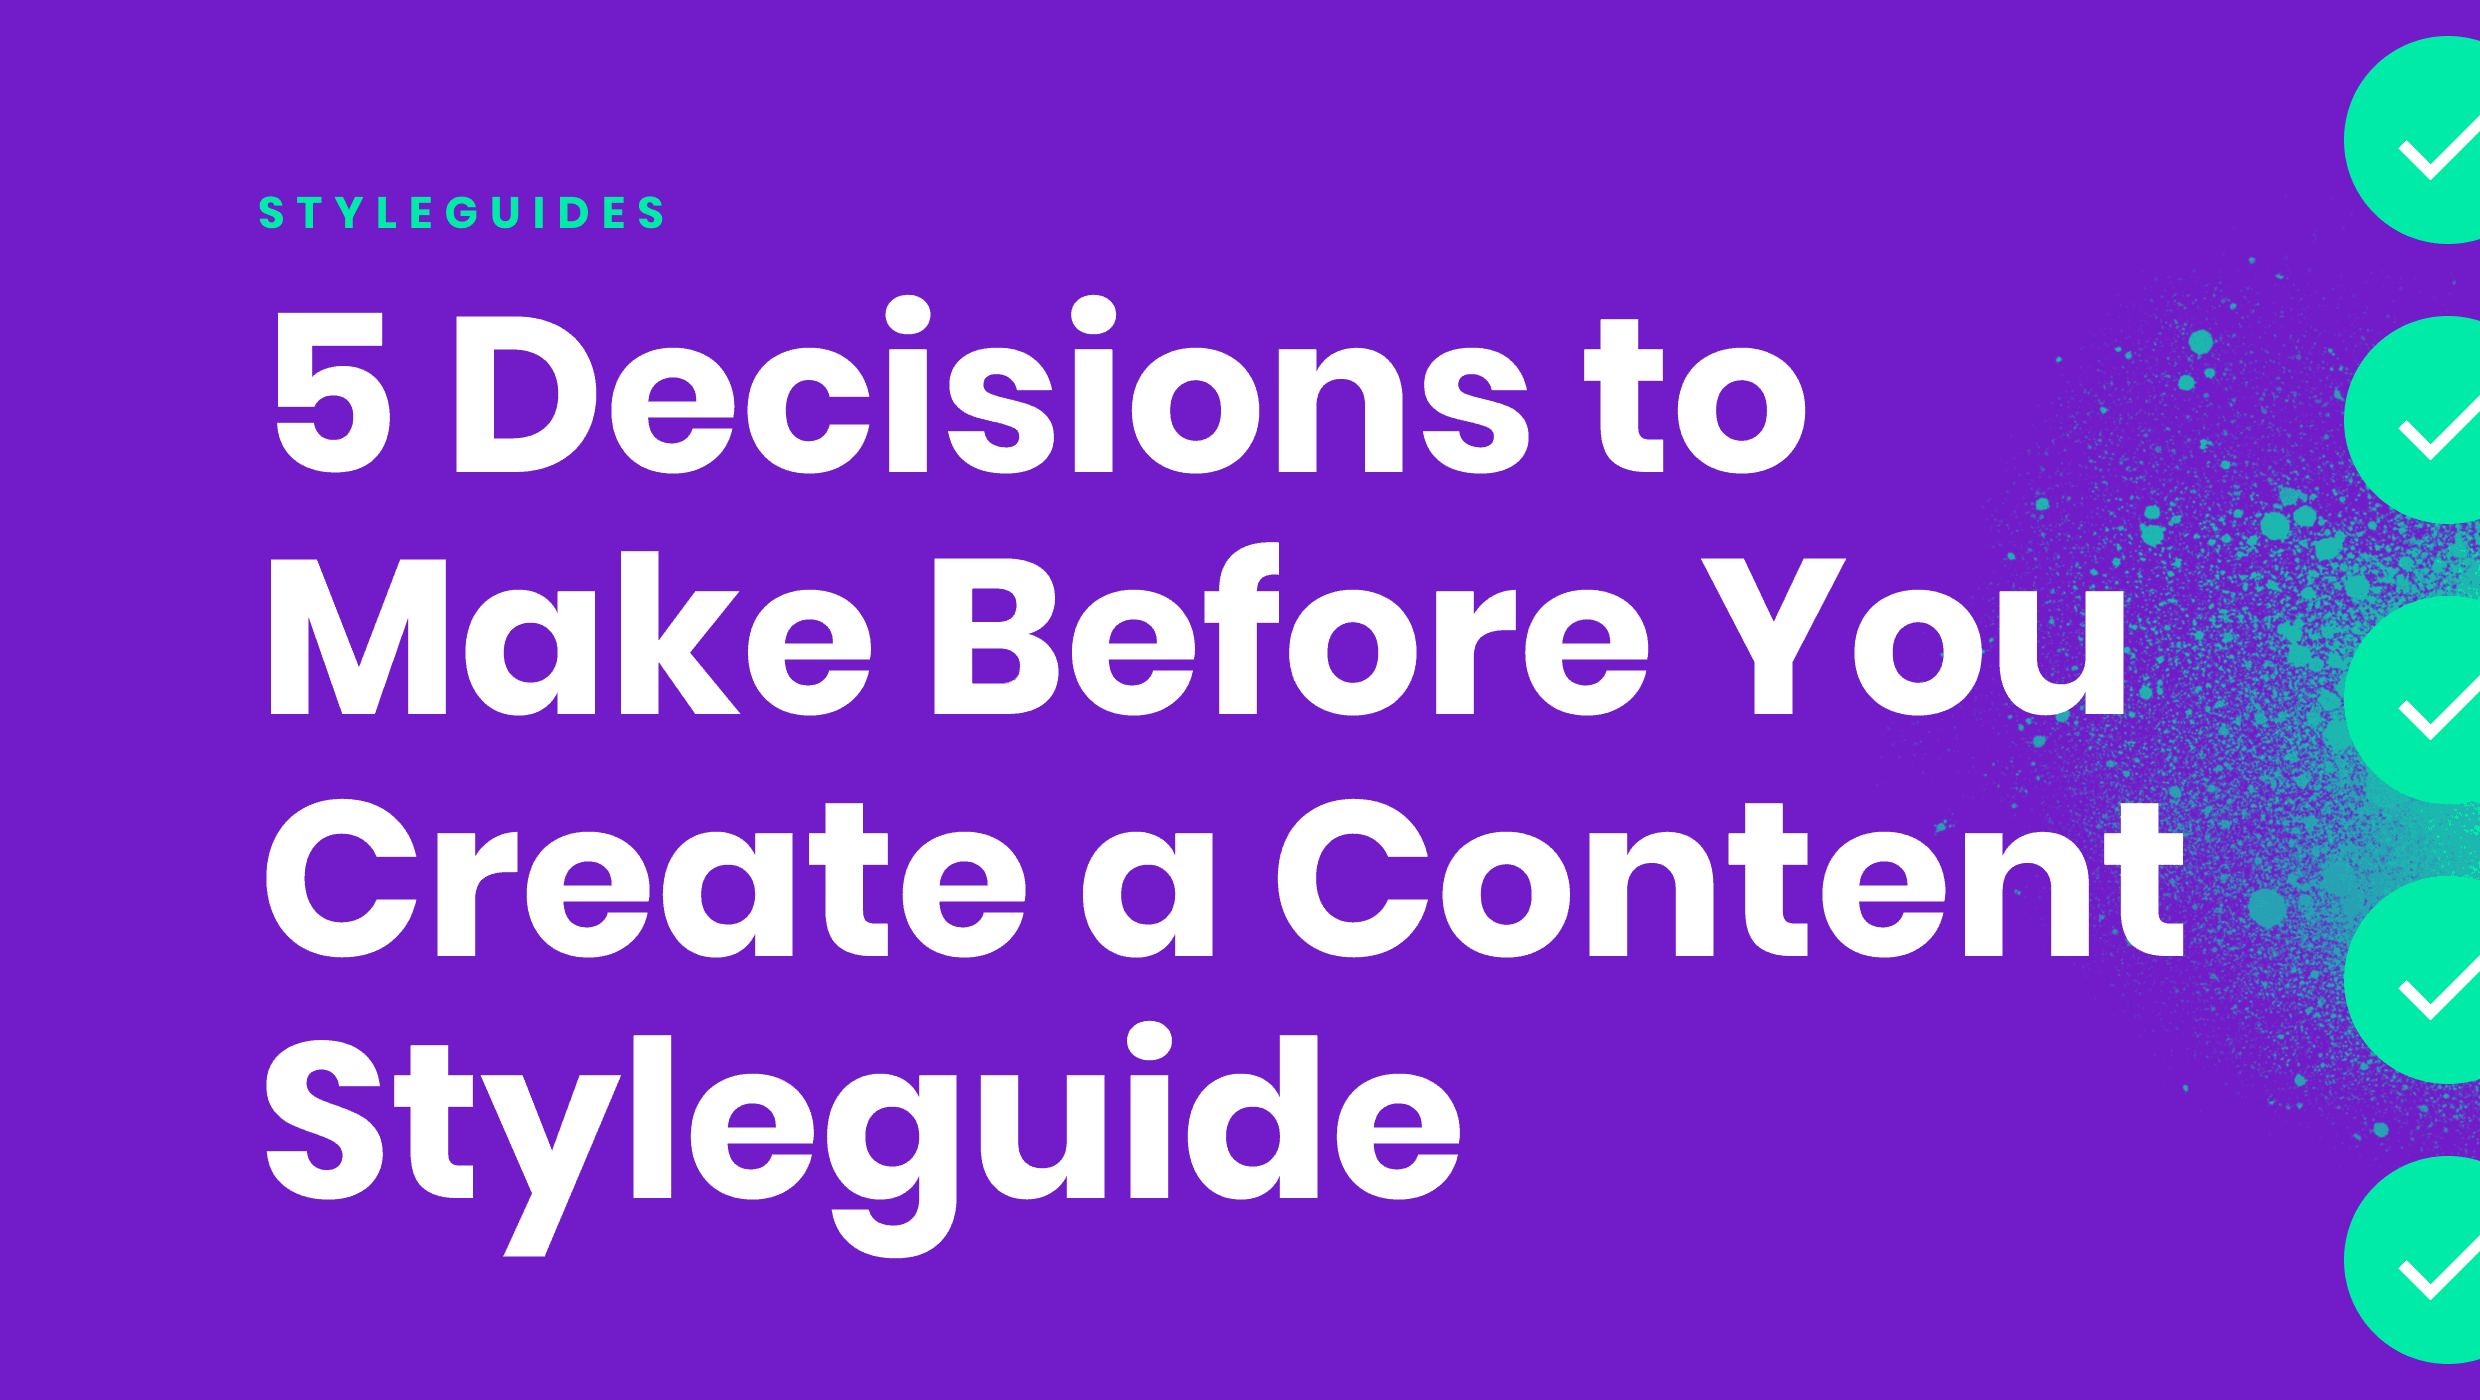 5 decisions to make before you create a styleguide